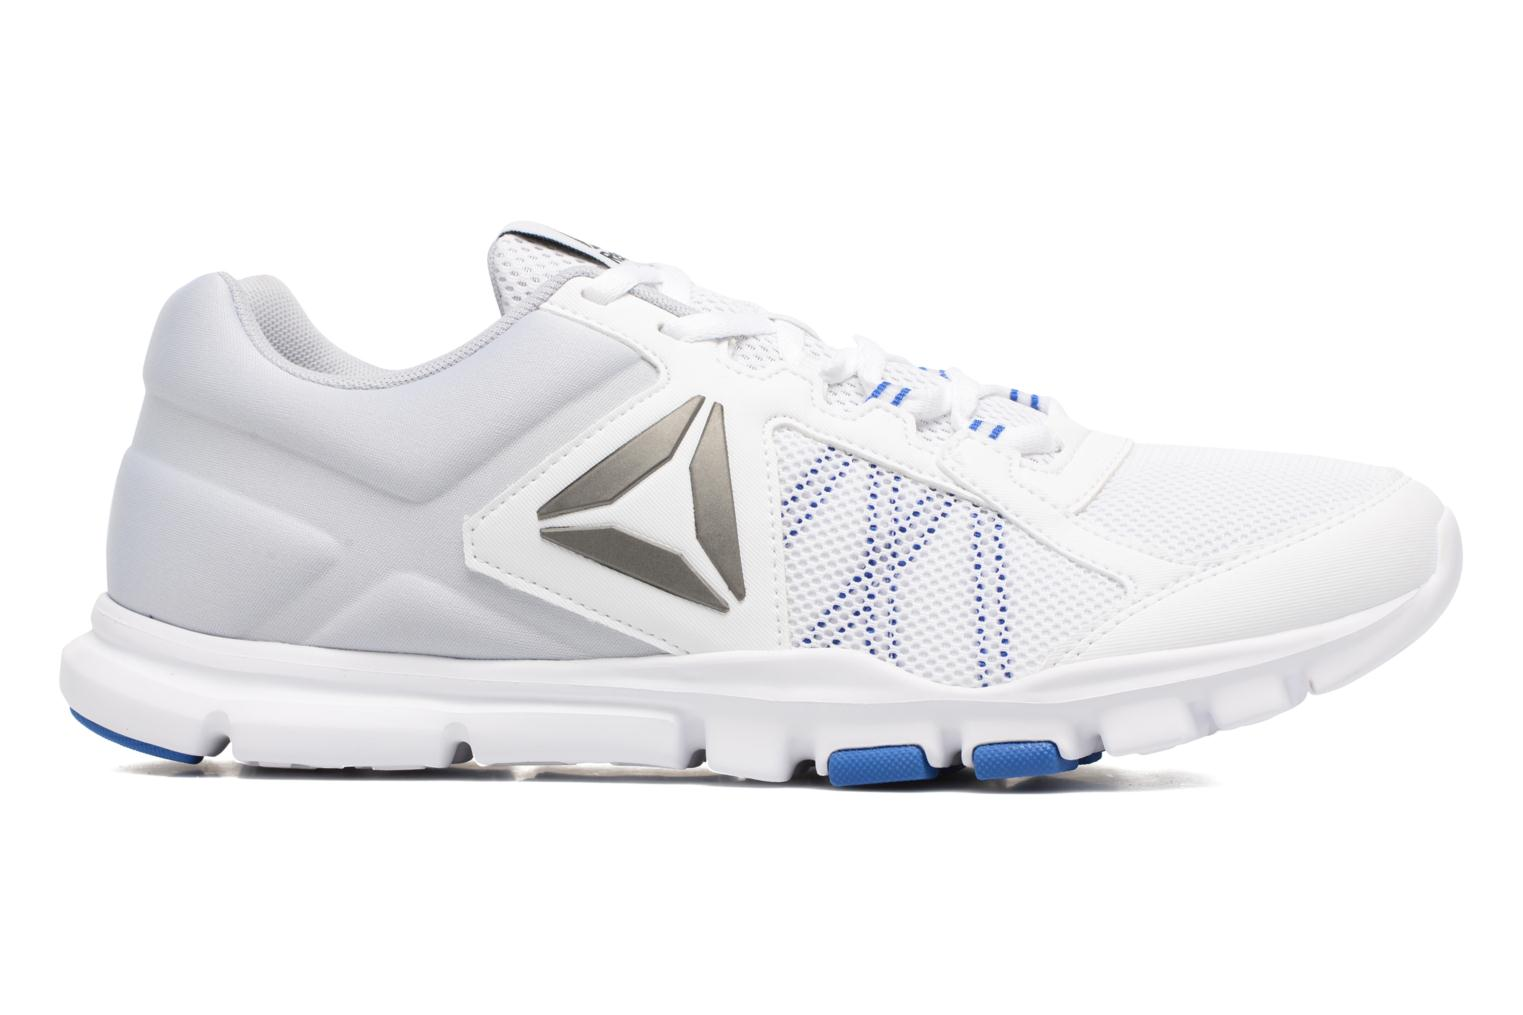 Yourflex Train 9.0 White/Vital Blue/Cloud Grey